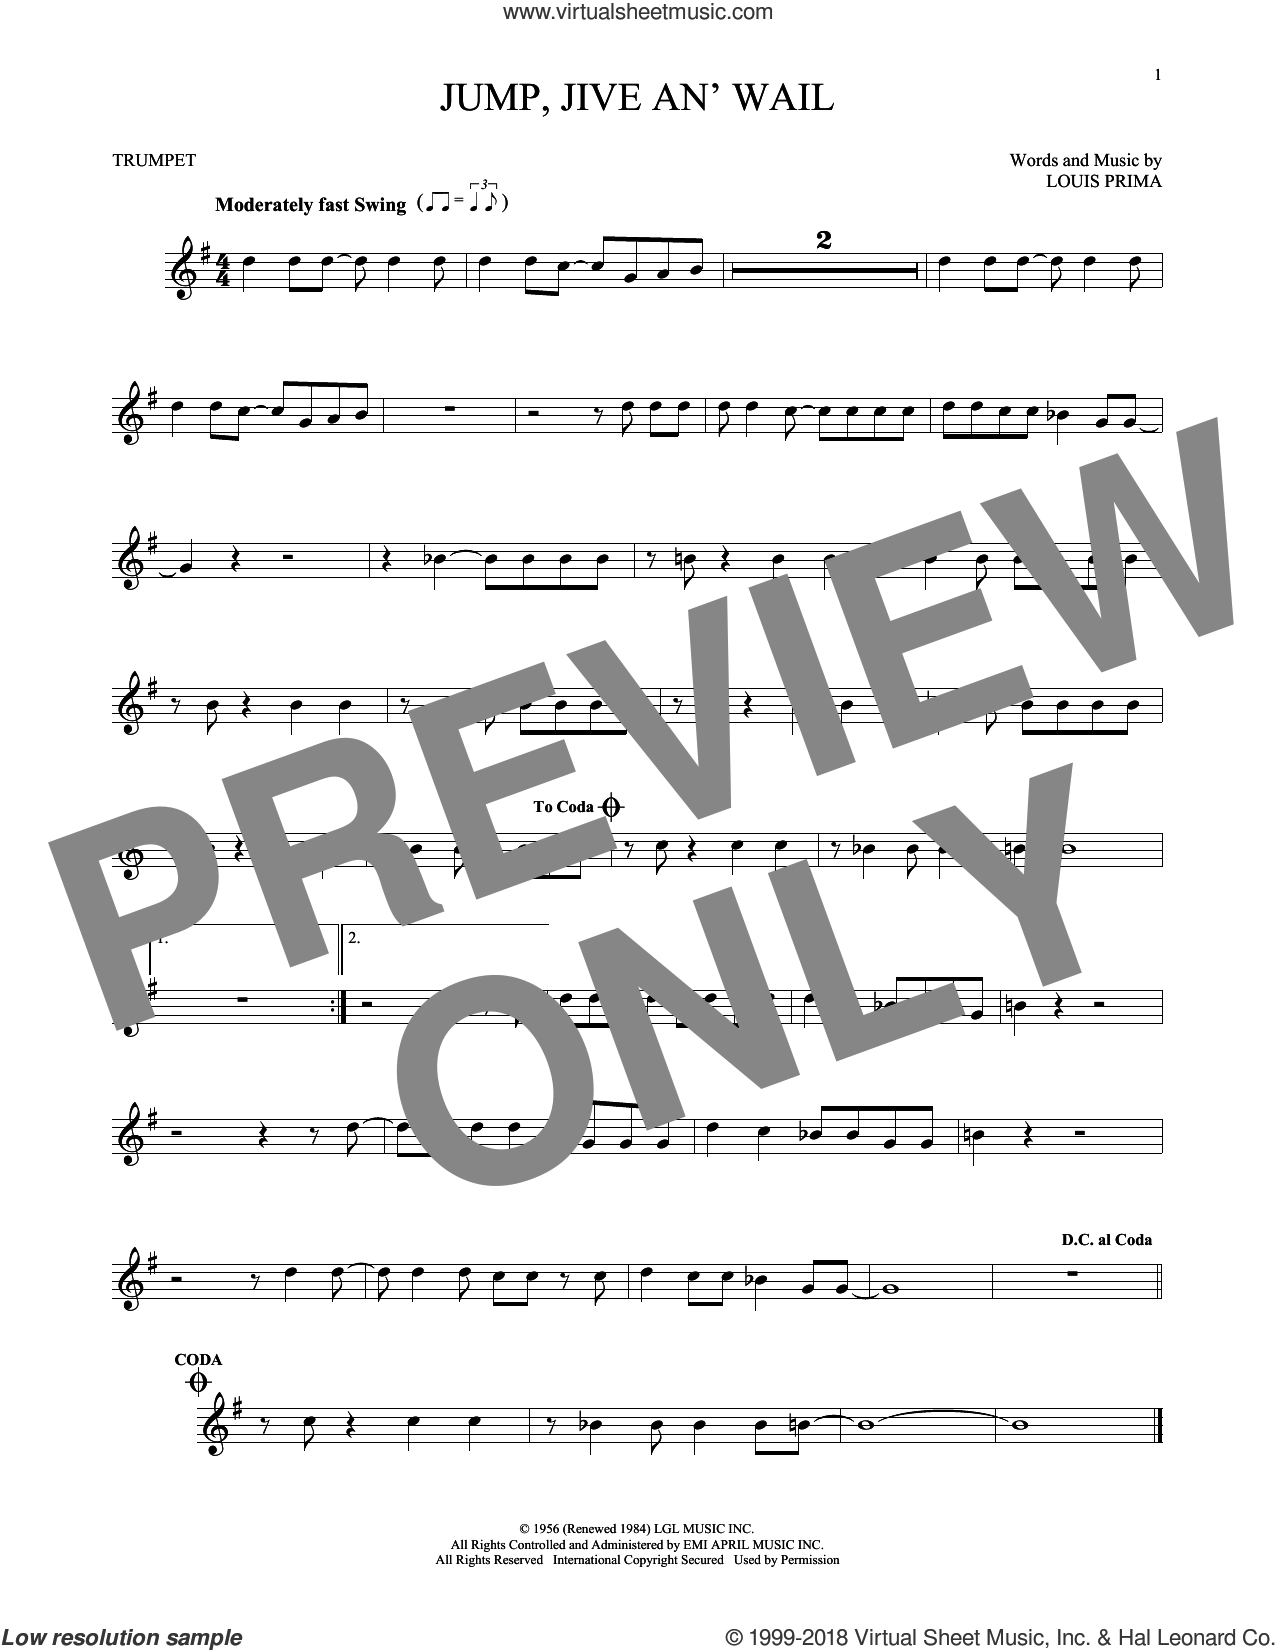 Jump, Jive An' Wail sheet music for trumpet solo by Louis Prima and Brian Setzer, intermediate skill level